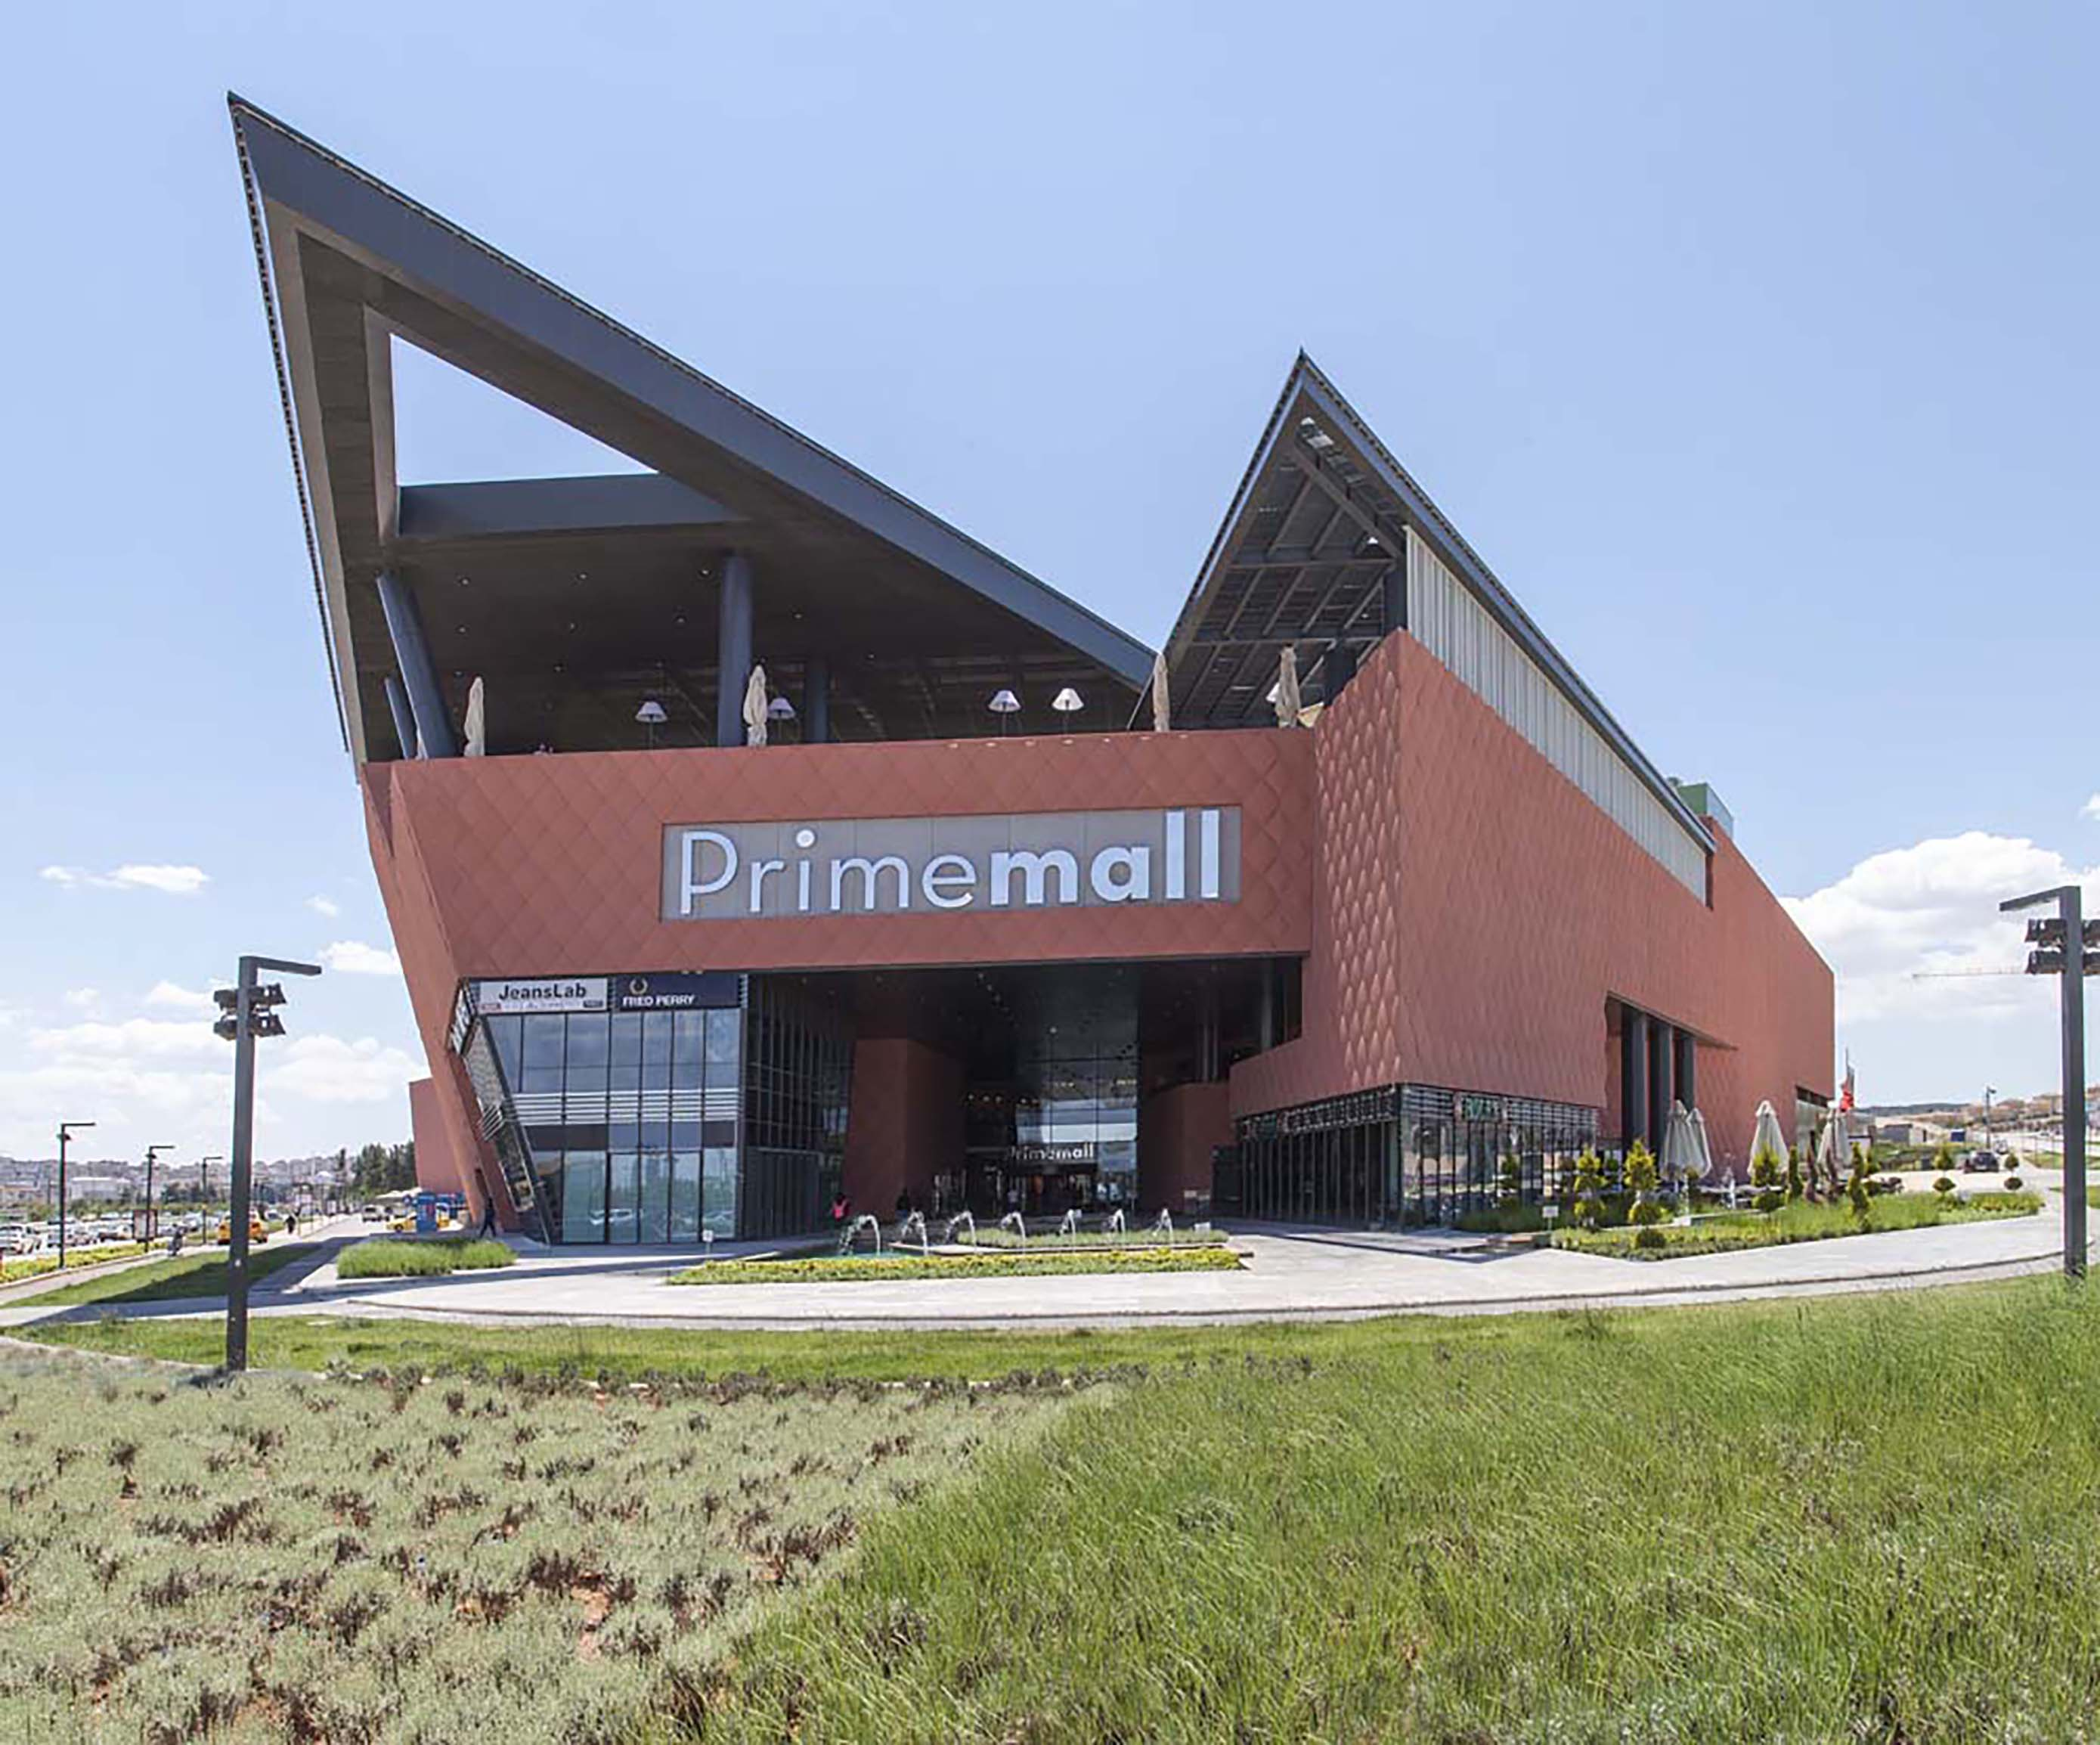 Fibrobeton Primemall Shopping Mall